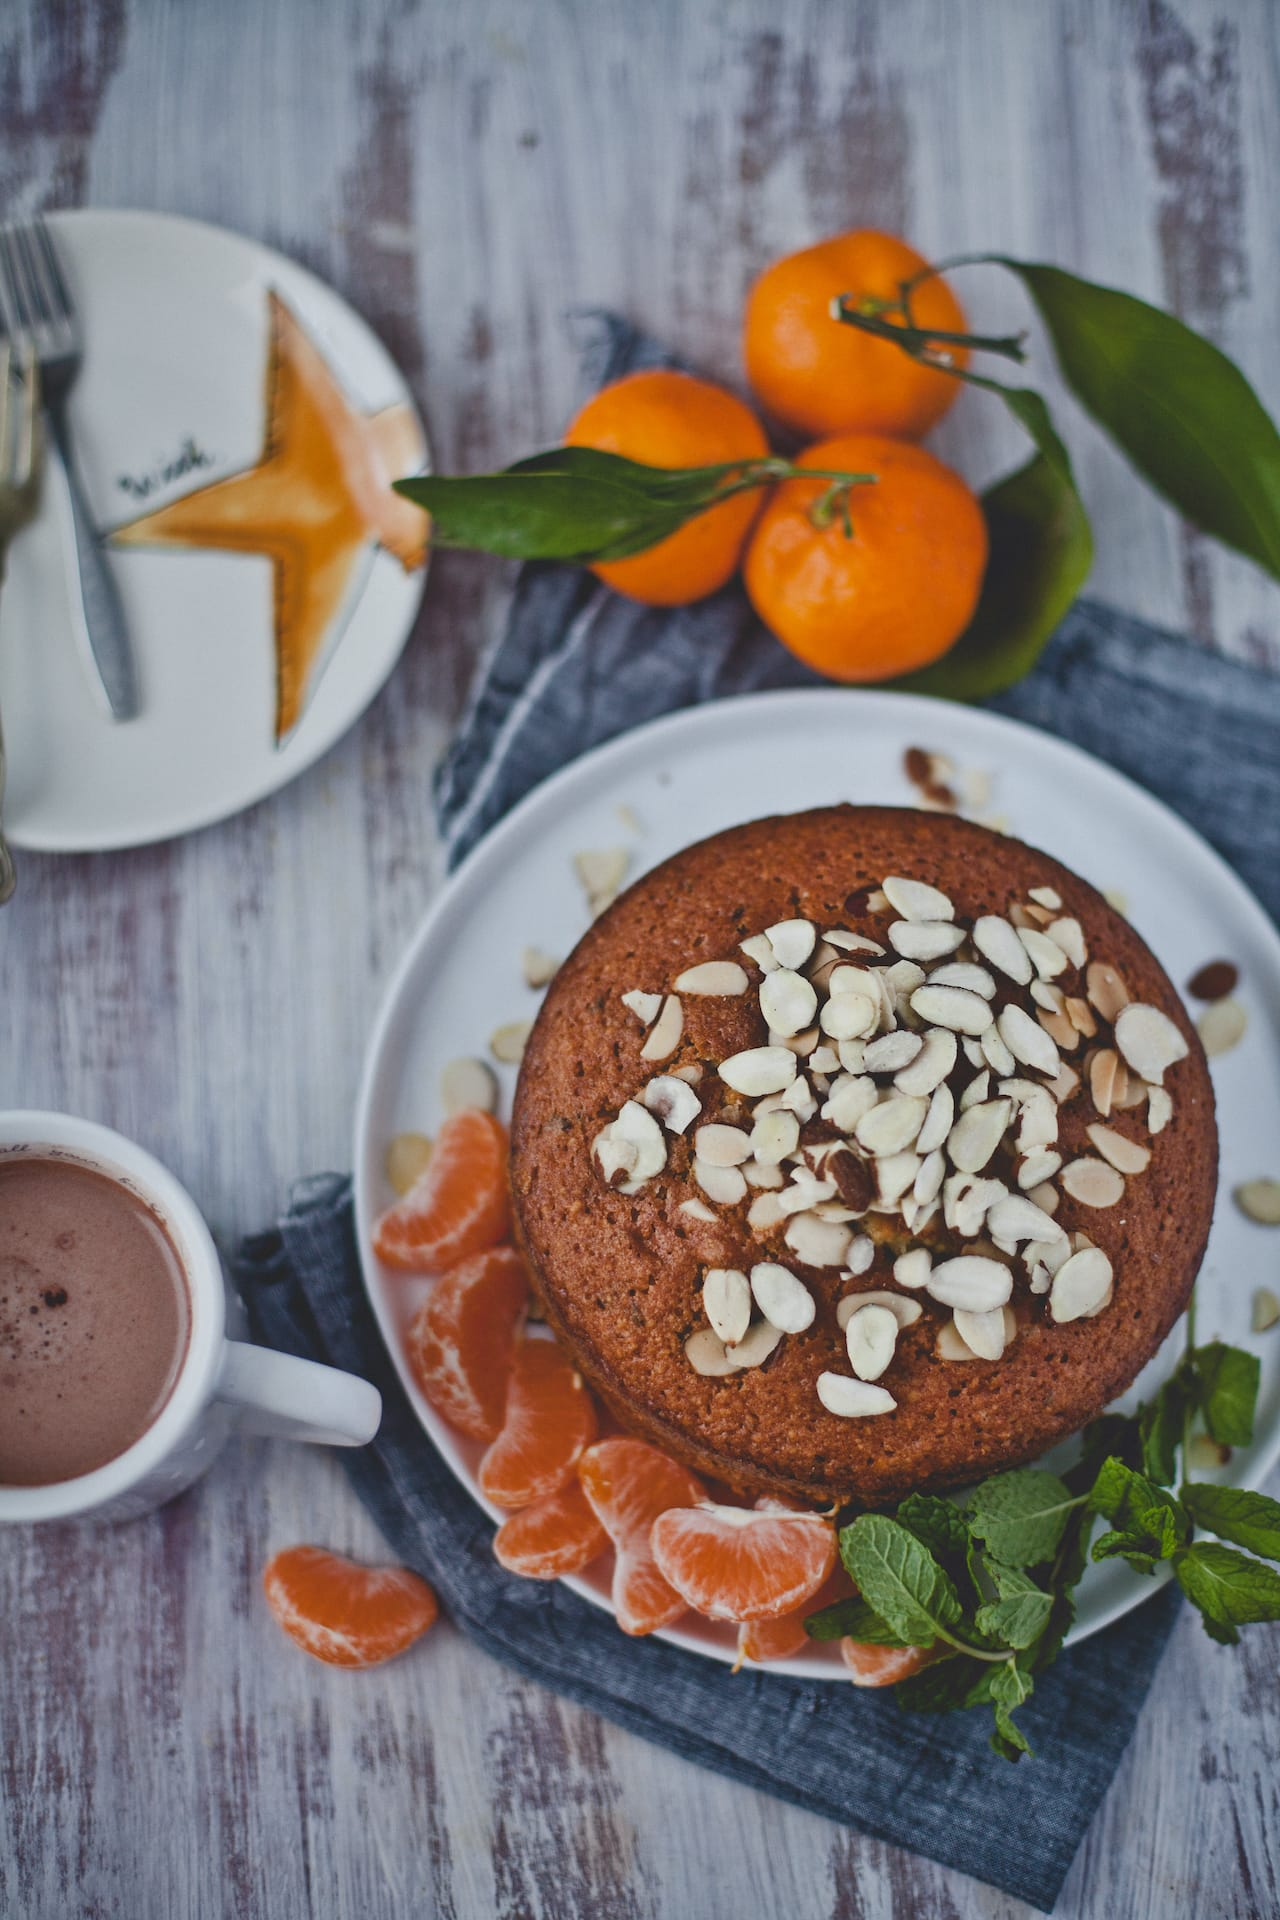 Orange Mint Almond Cake | Playful Cooking